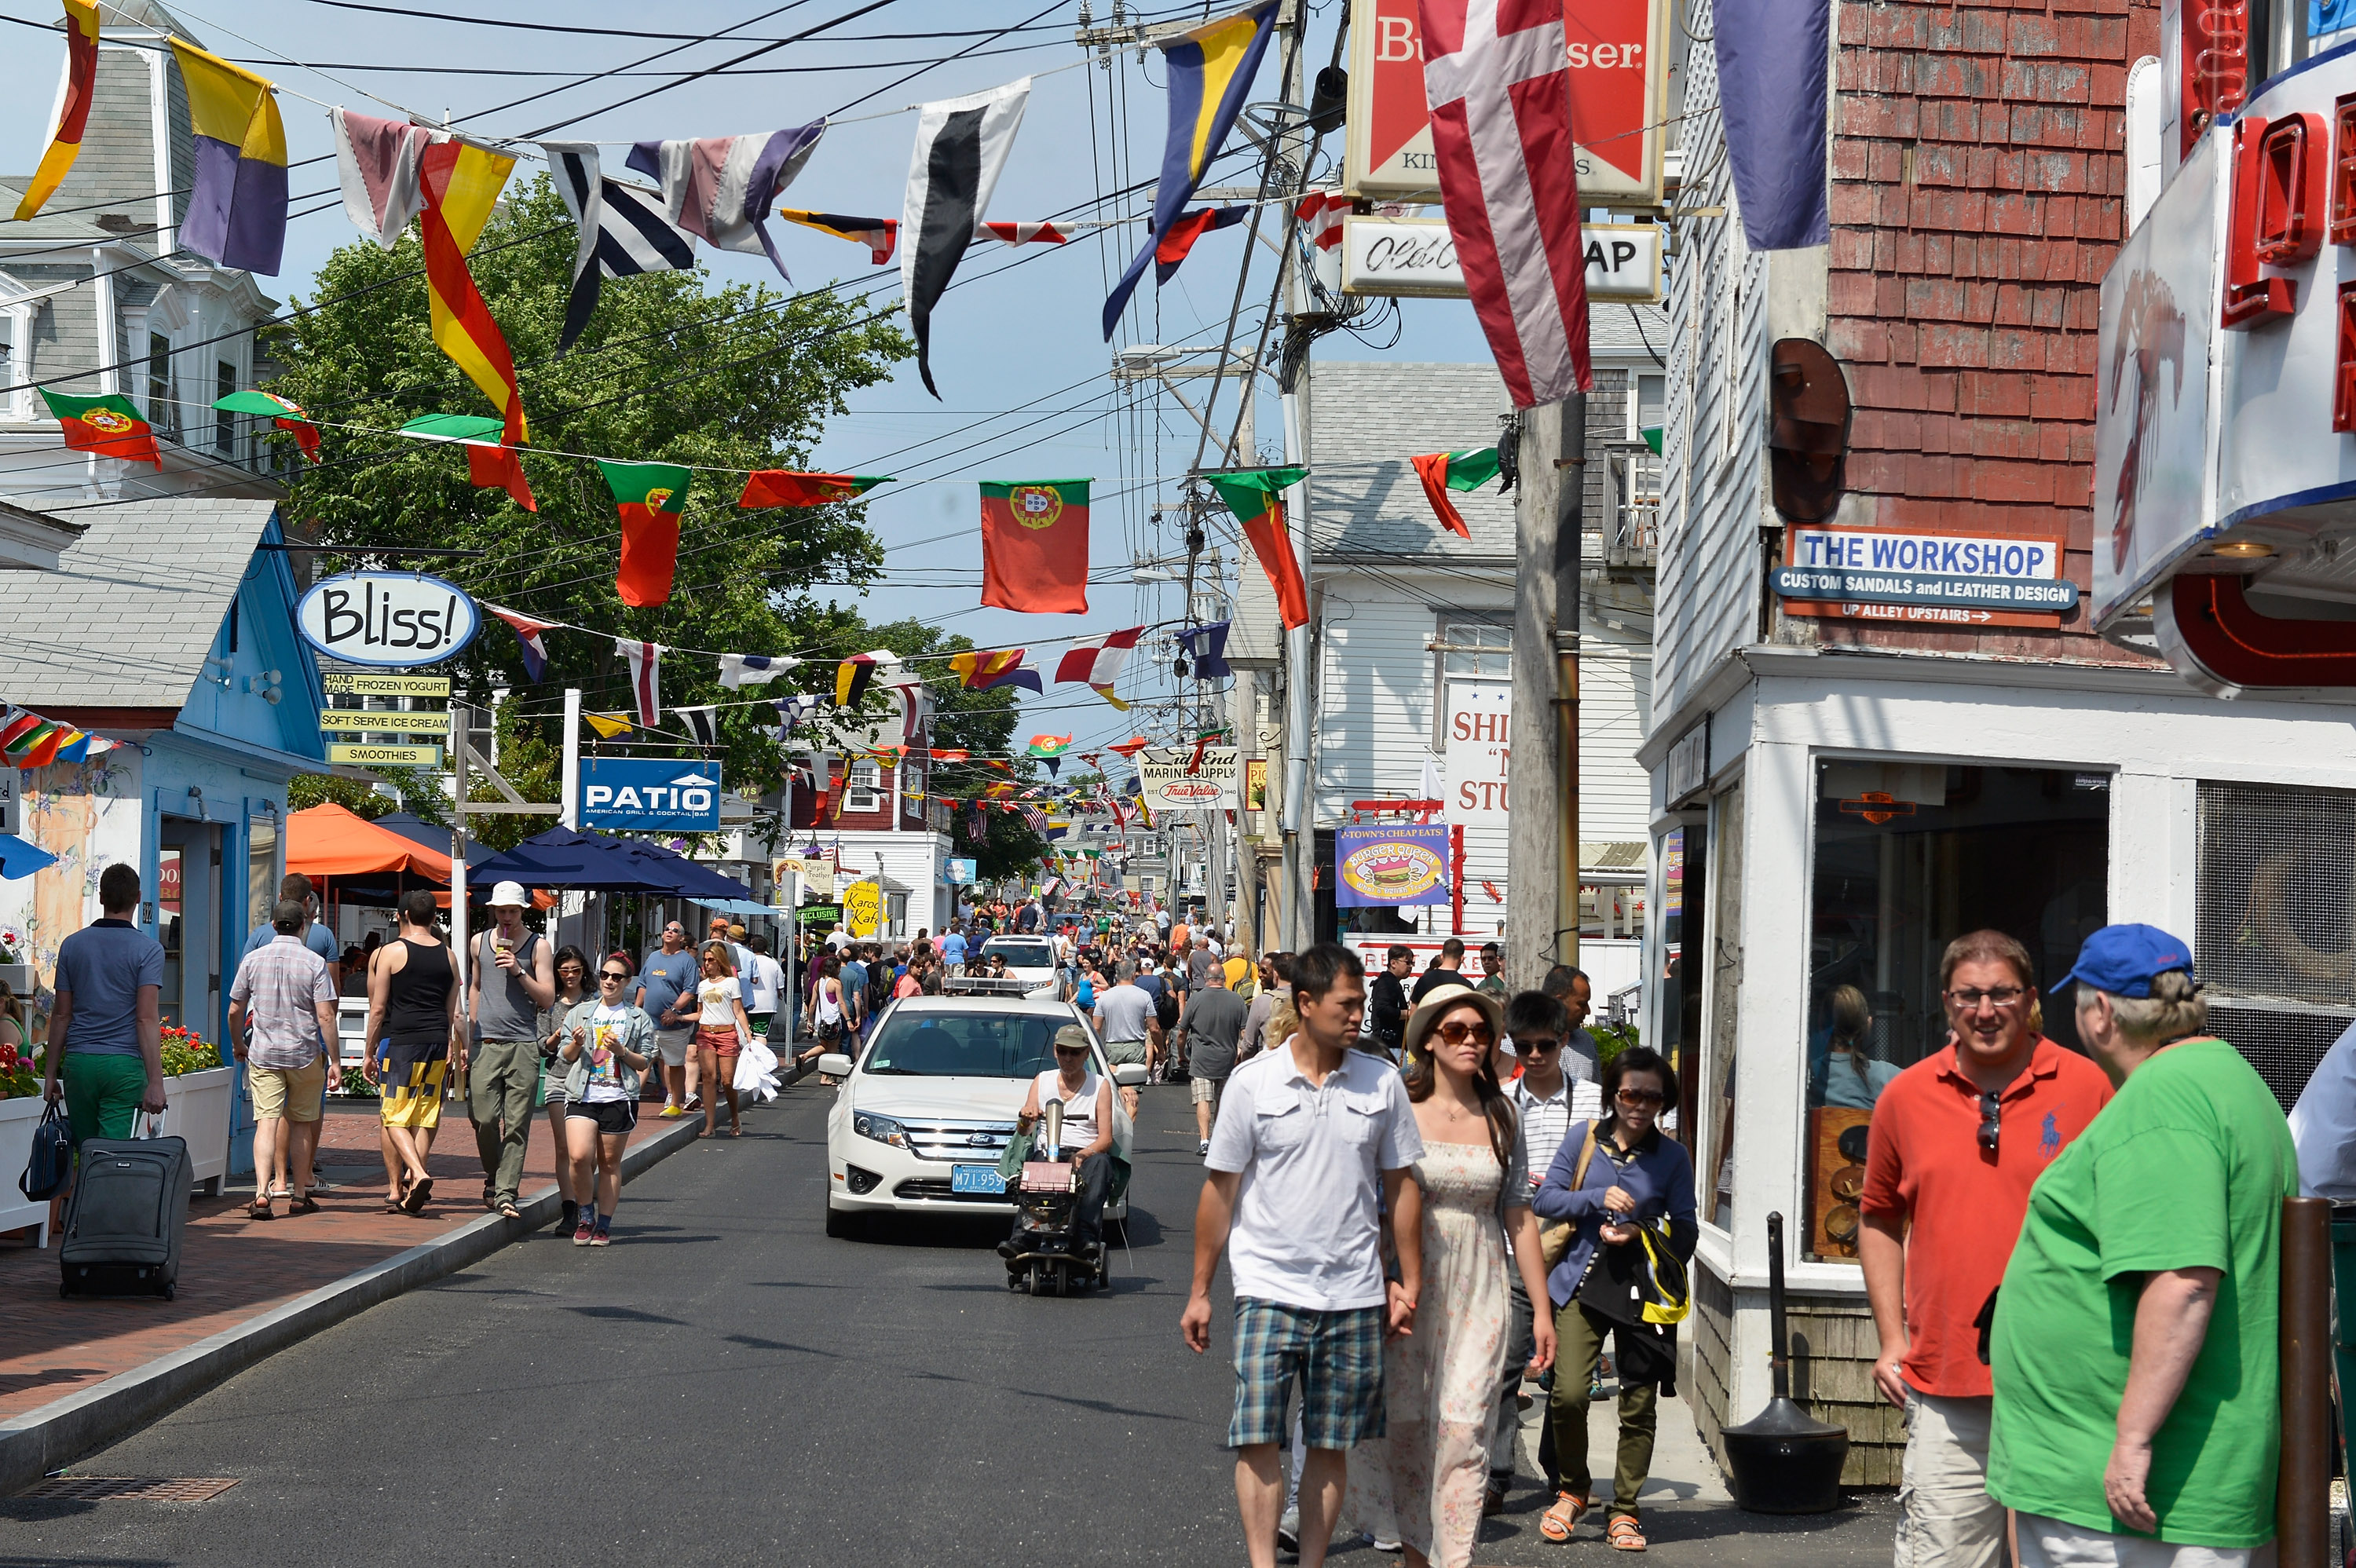 A general view of Provincetown on June 22, 2013.